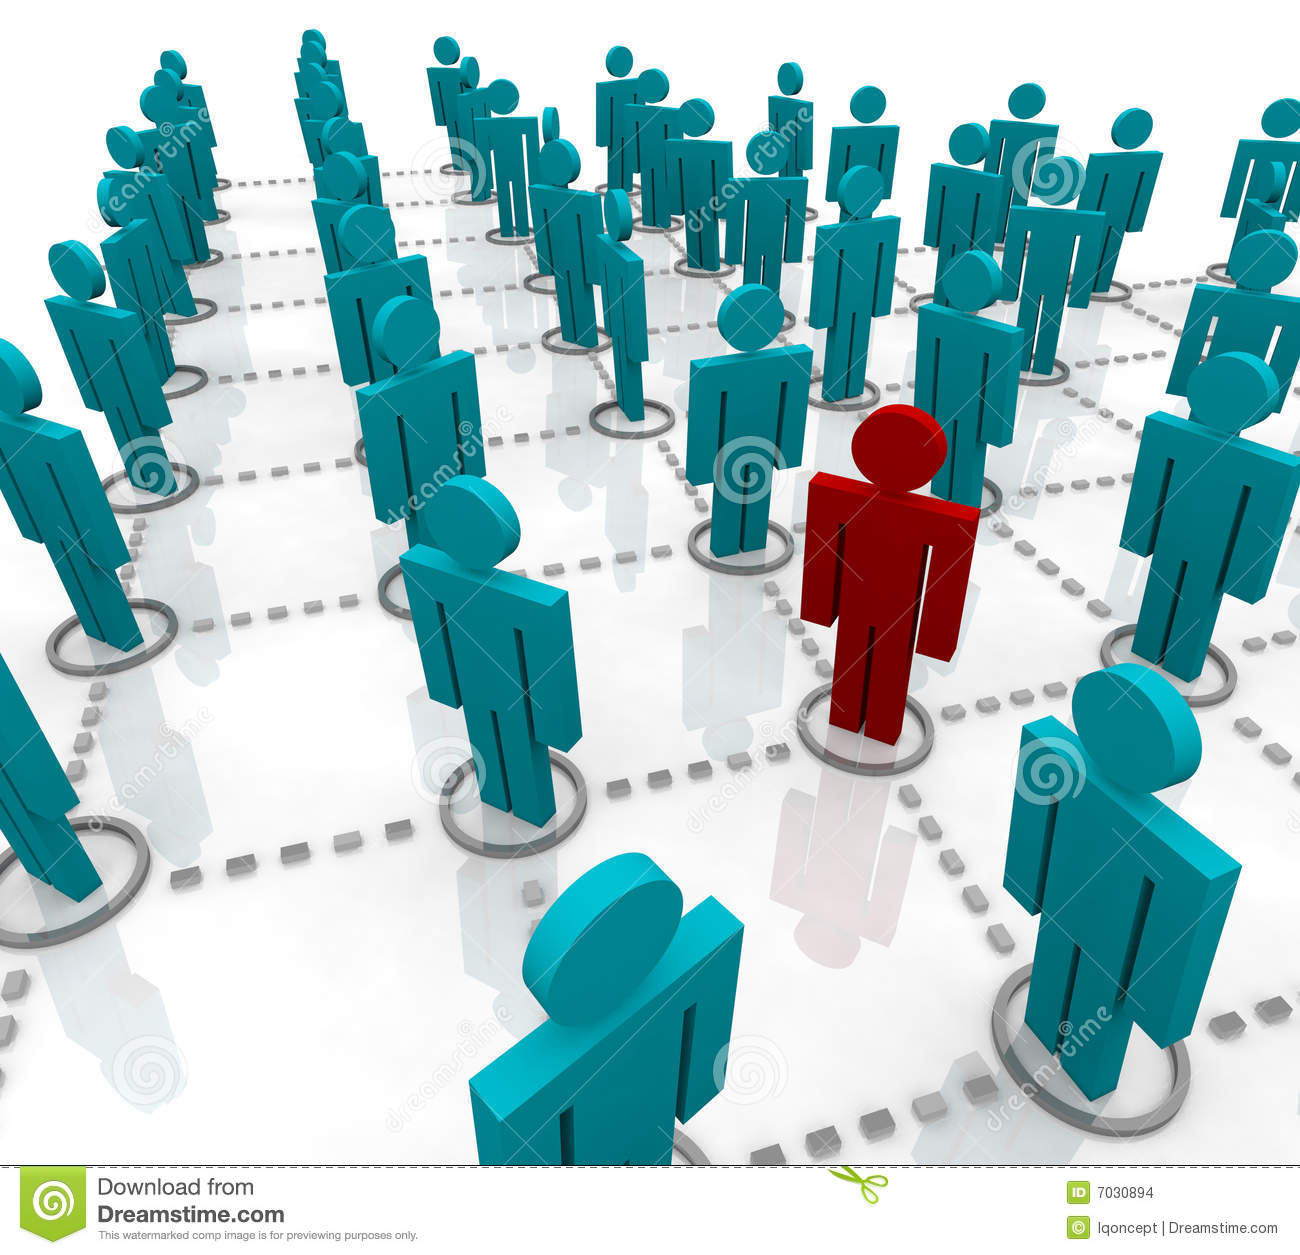 Large Network of People